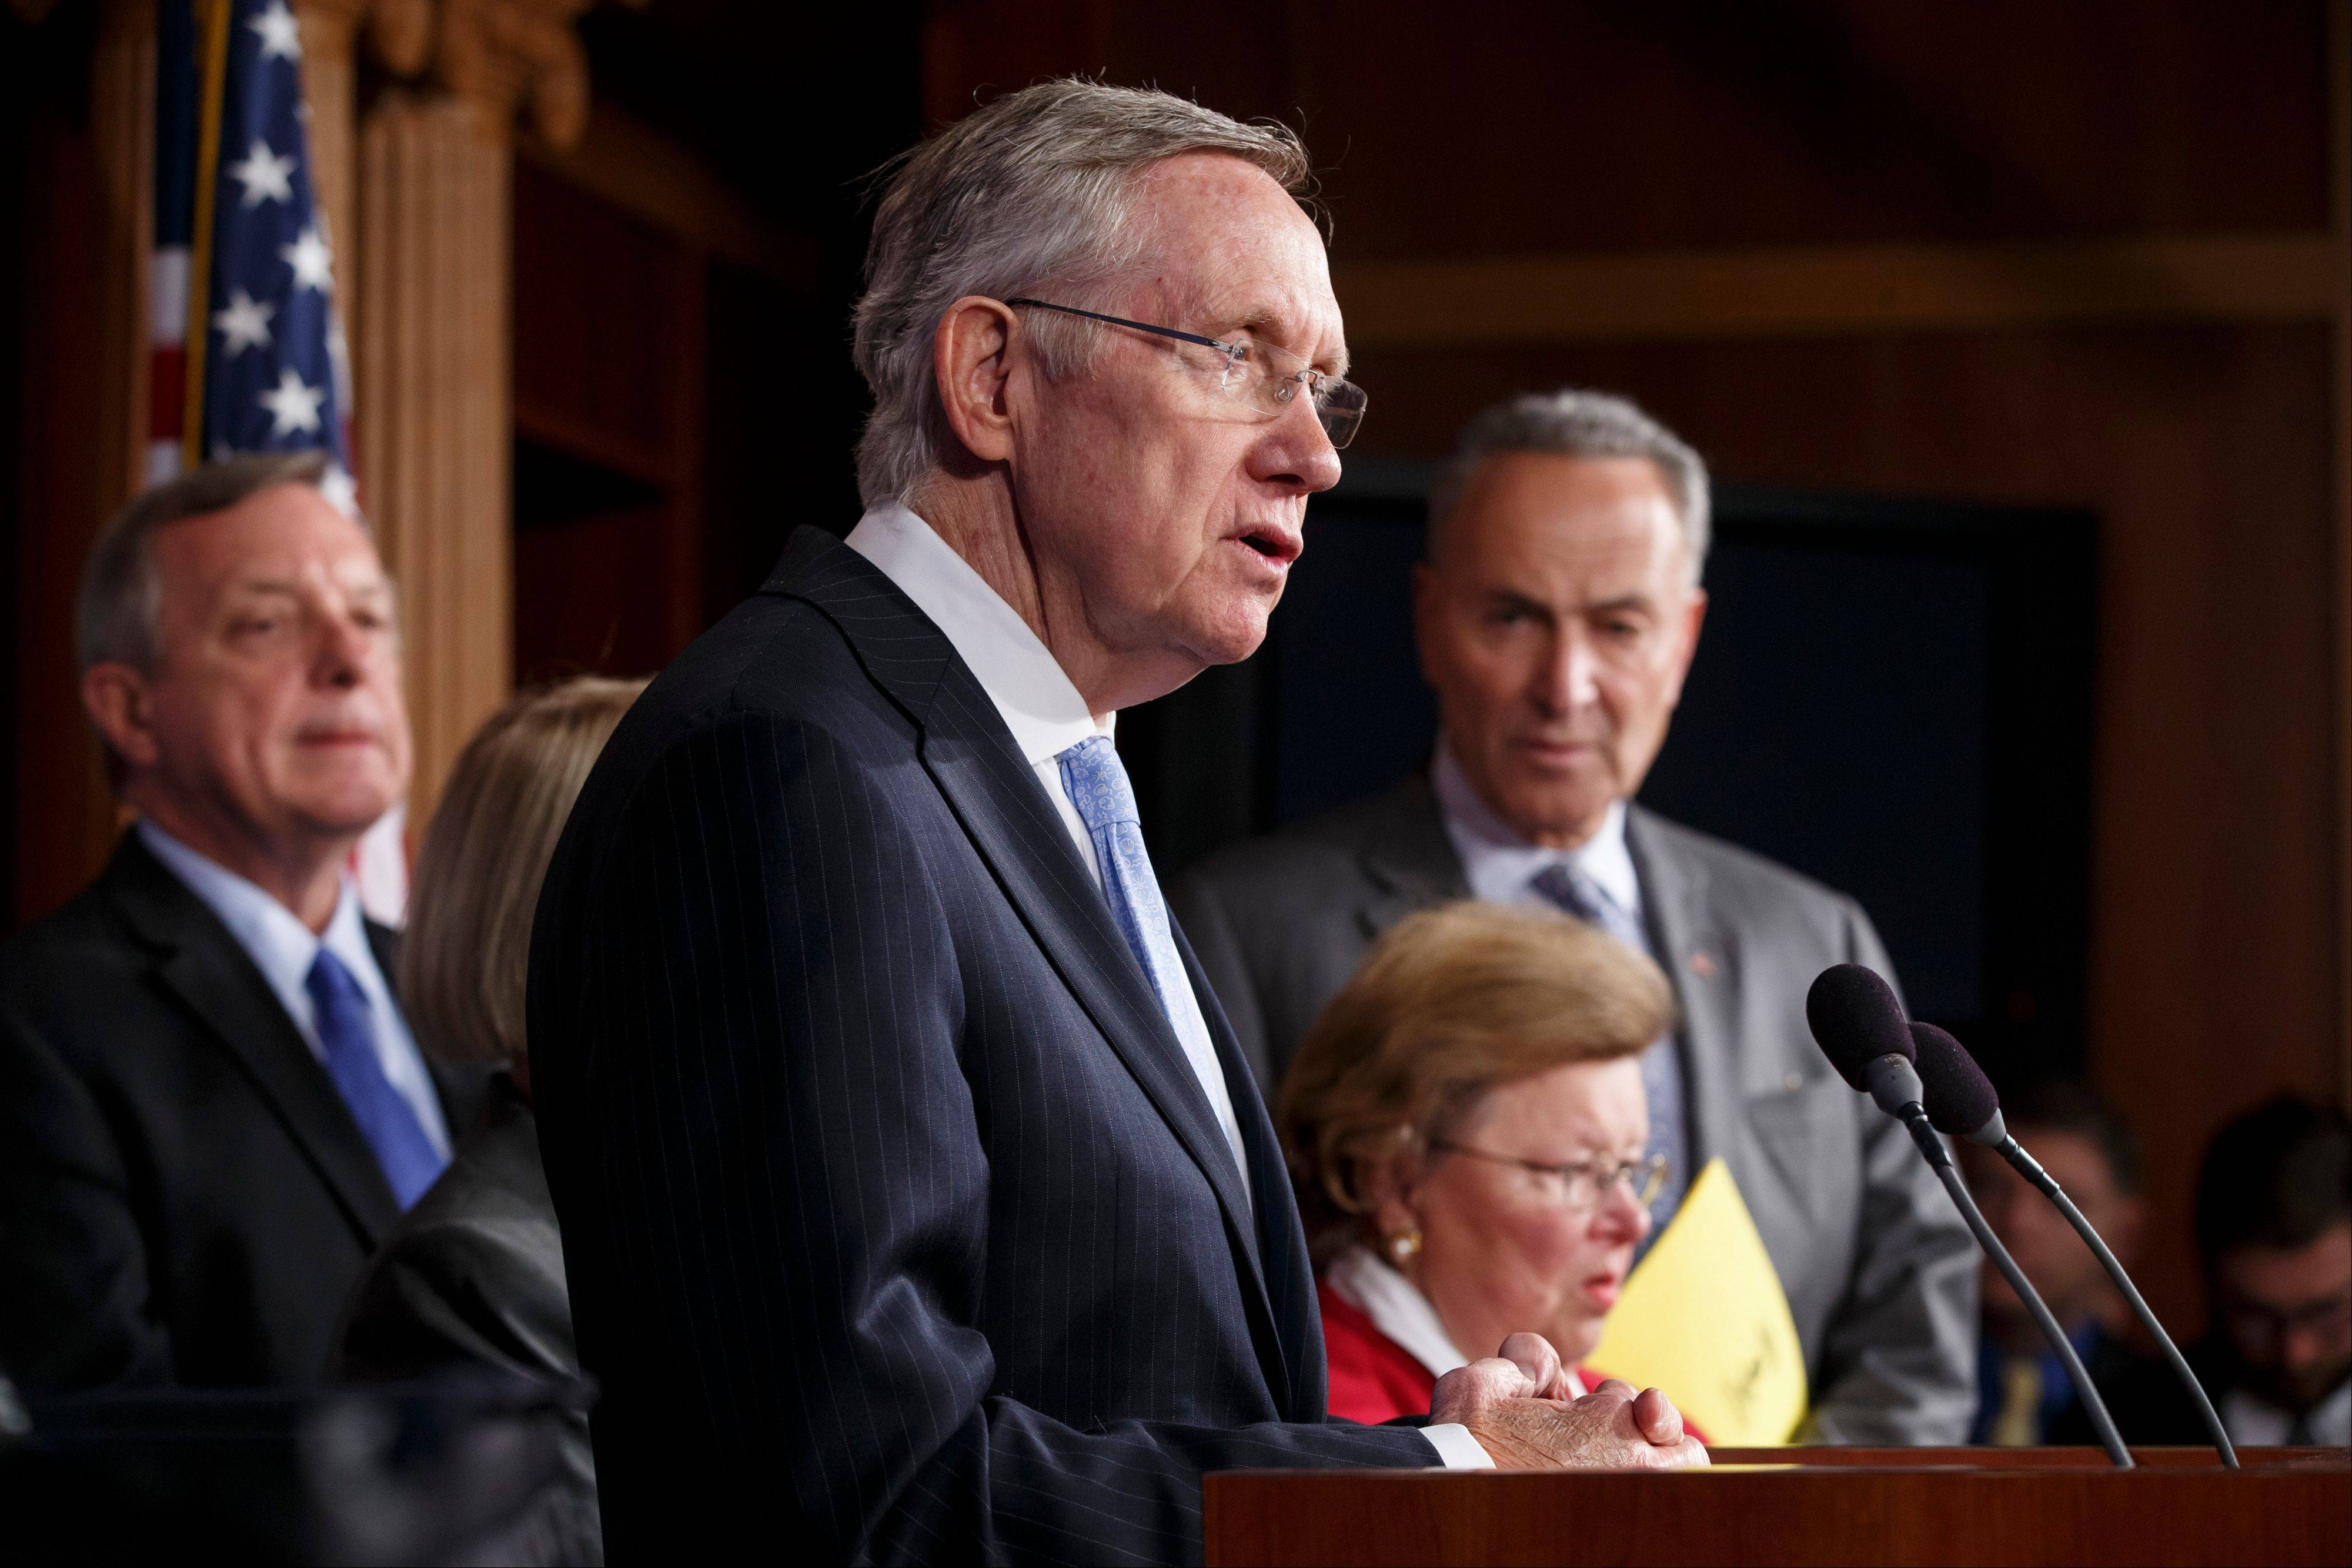 Senate Majority Leader Harry Reid of Nev., center, joined by Senate Democratic leaders, speaks during a news conference Thursday to blame conservative Republicans for holding up a stopgap spending bill to keep the government running.